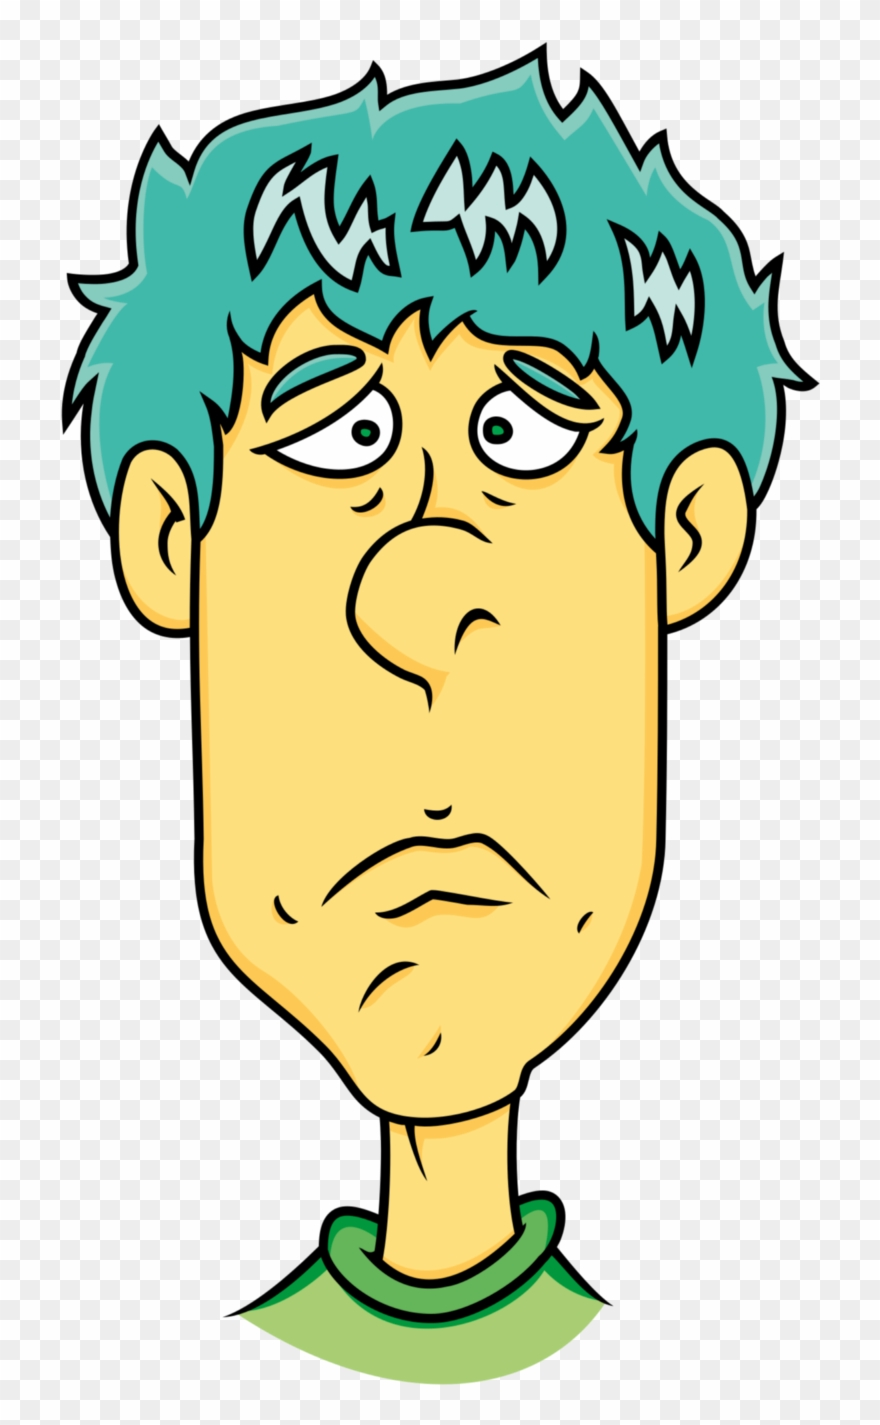 Sad man face clipart image free library Face Of Sad Man - Sad Man Face Cartoon Clipart (#109763 ... image free library